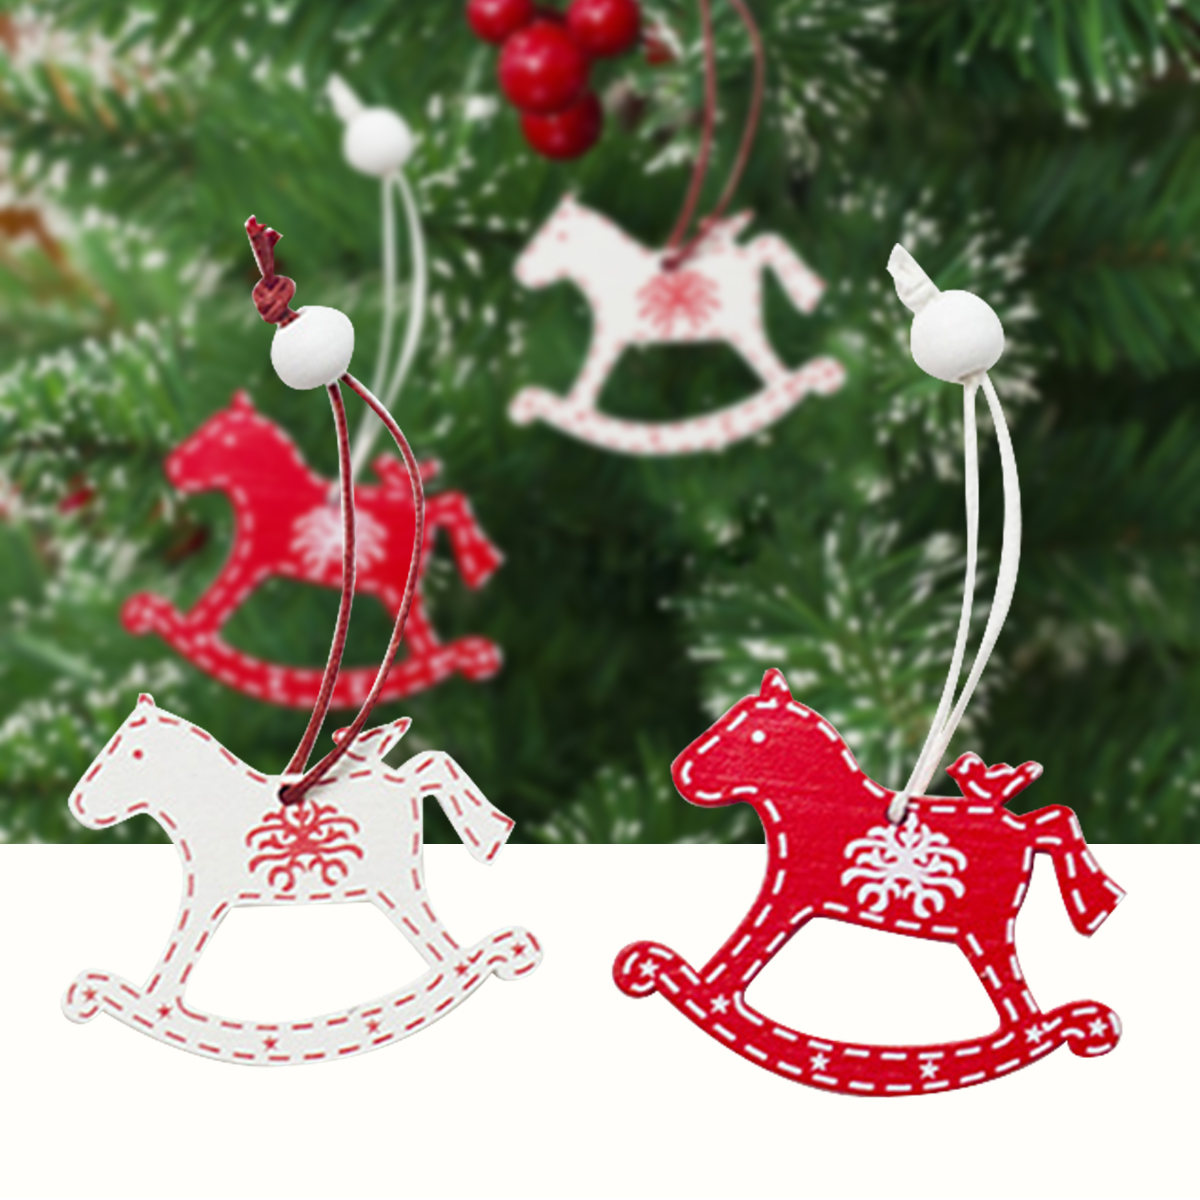 Party Supplies Diy Gifts Christmas Tree Decoration Wooden Ornaments Xmas Hanging Horse Drop Ornaments Discount Christmas Decorations Outdoor Discount Christmas Ornaments From Douglass 22 16 Dhgate Com